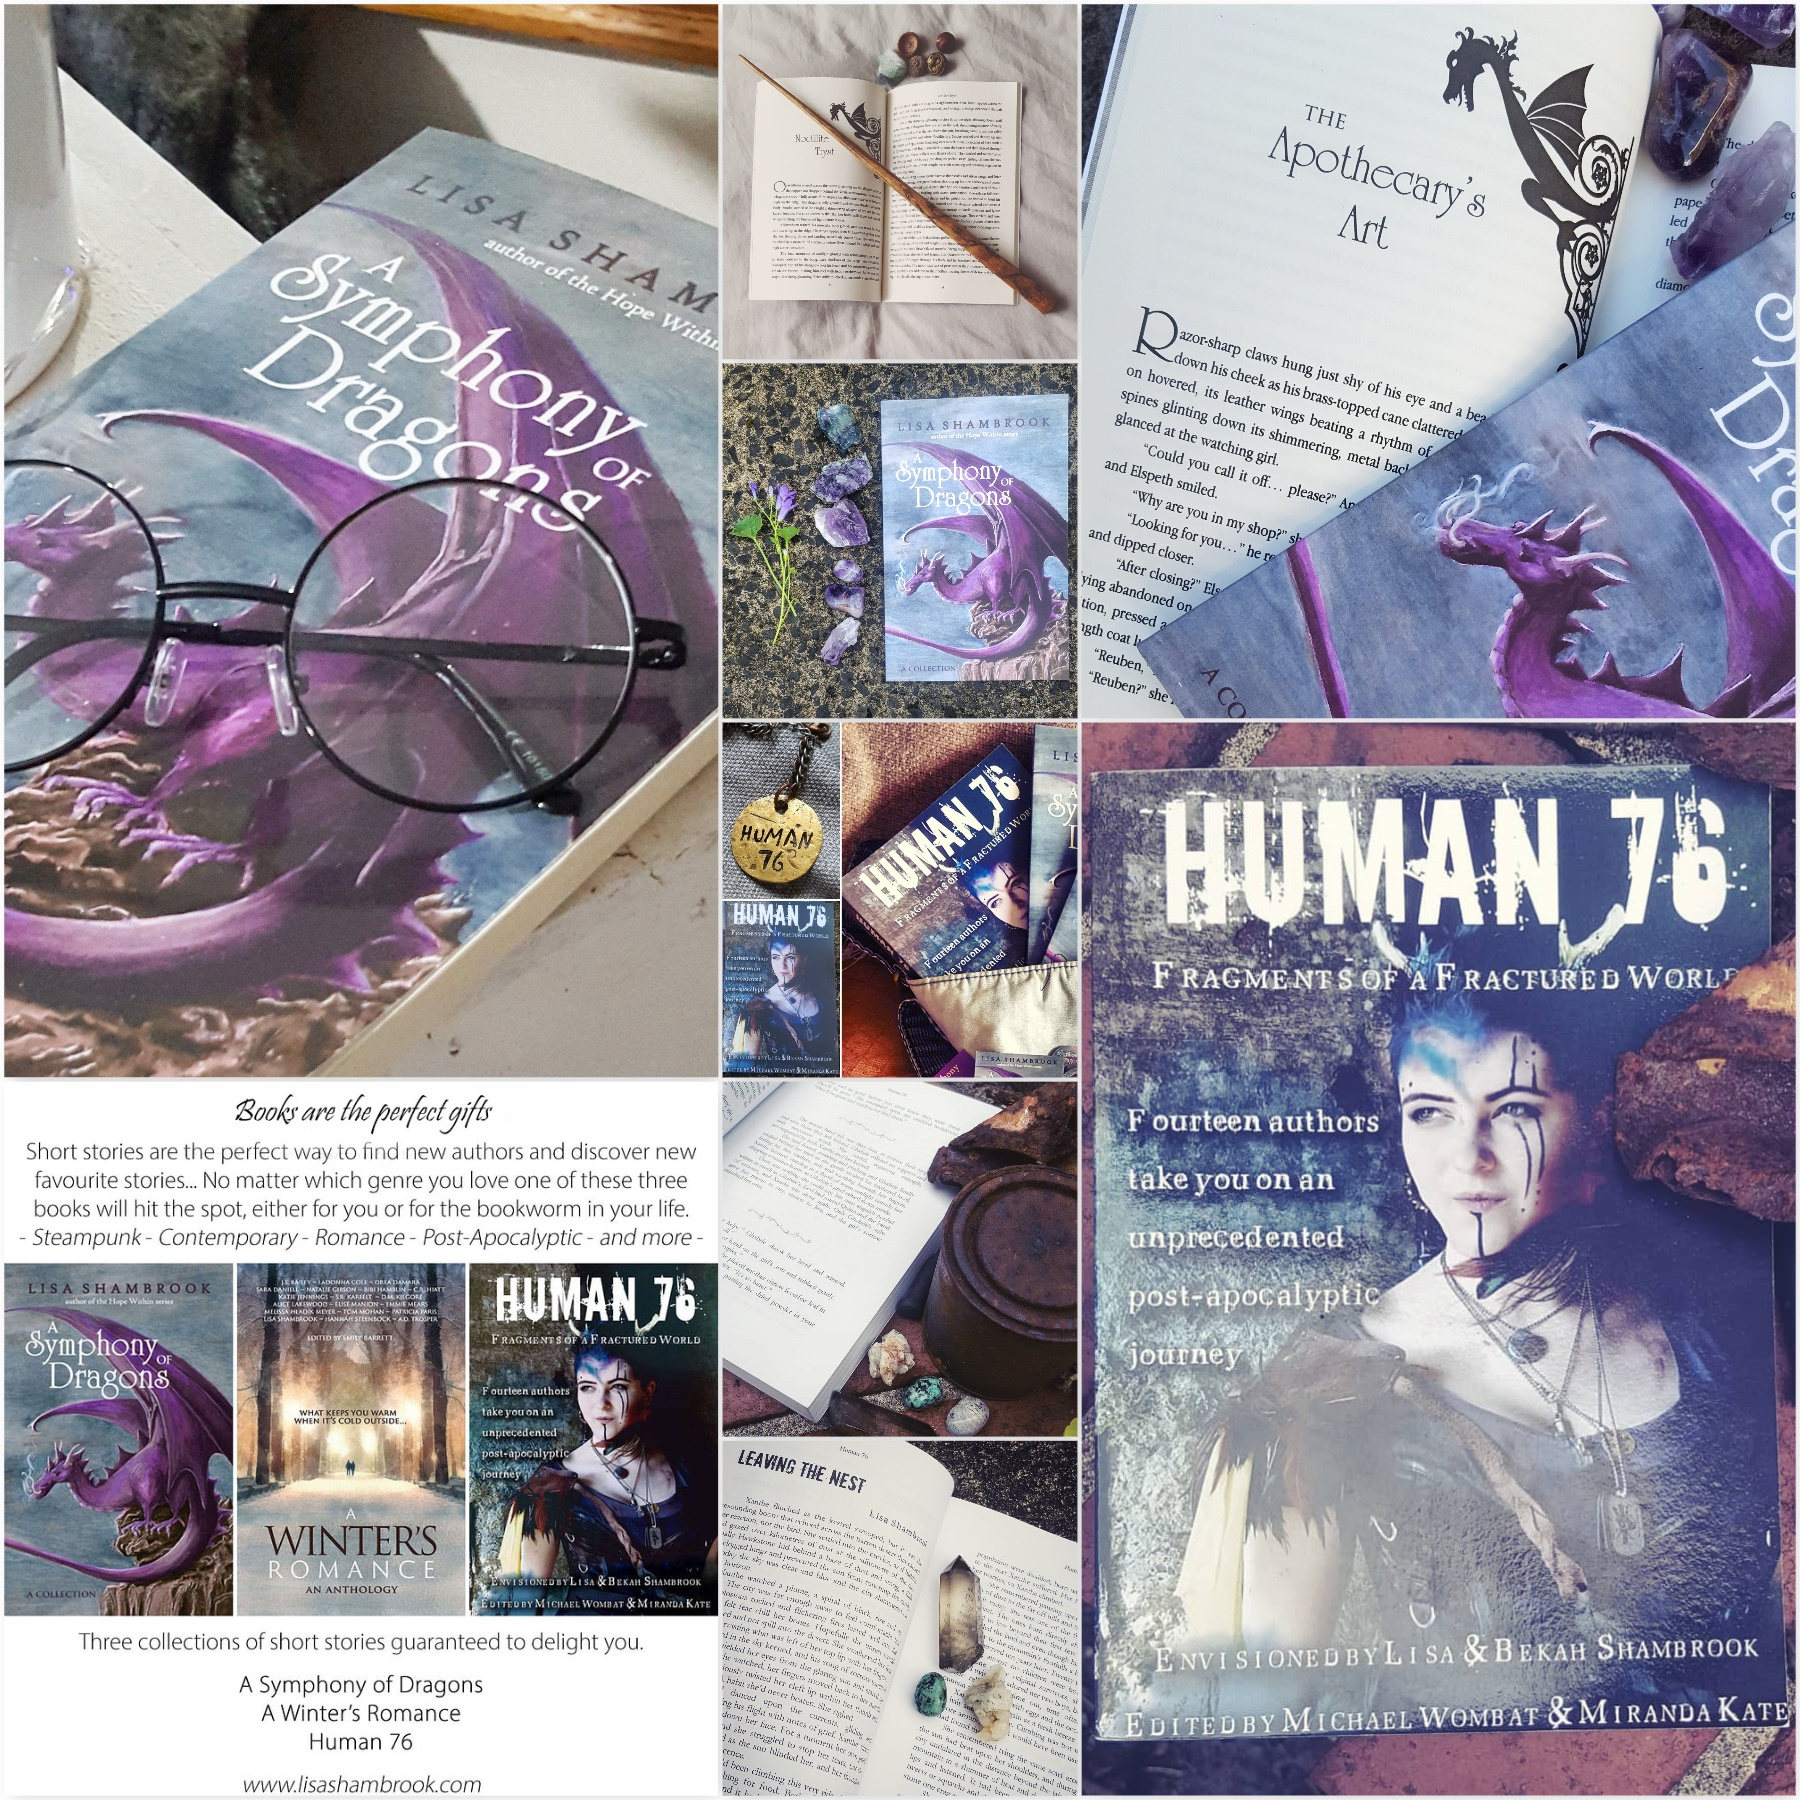 advertising photos of A Symphony of Dragons and Human 76 books by Lisa Shambrook